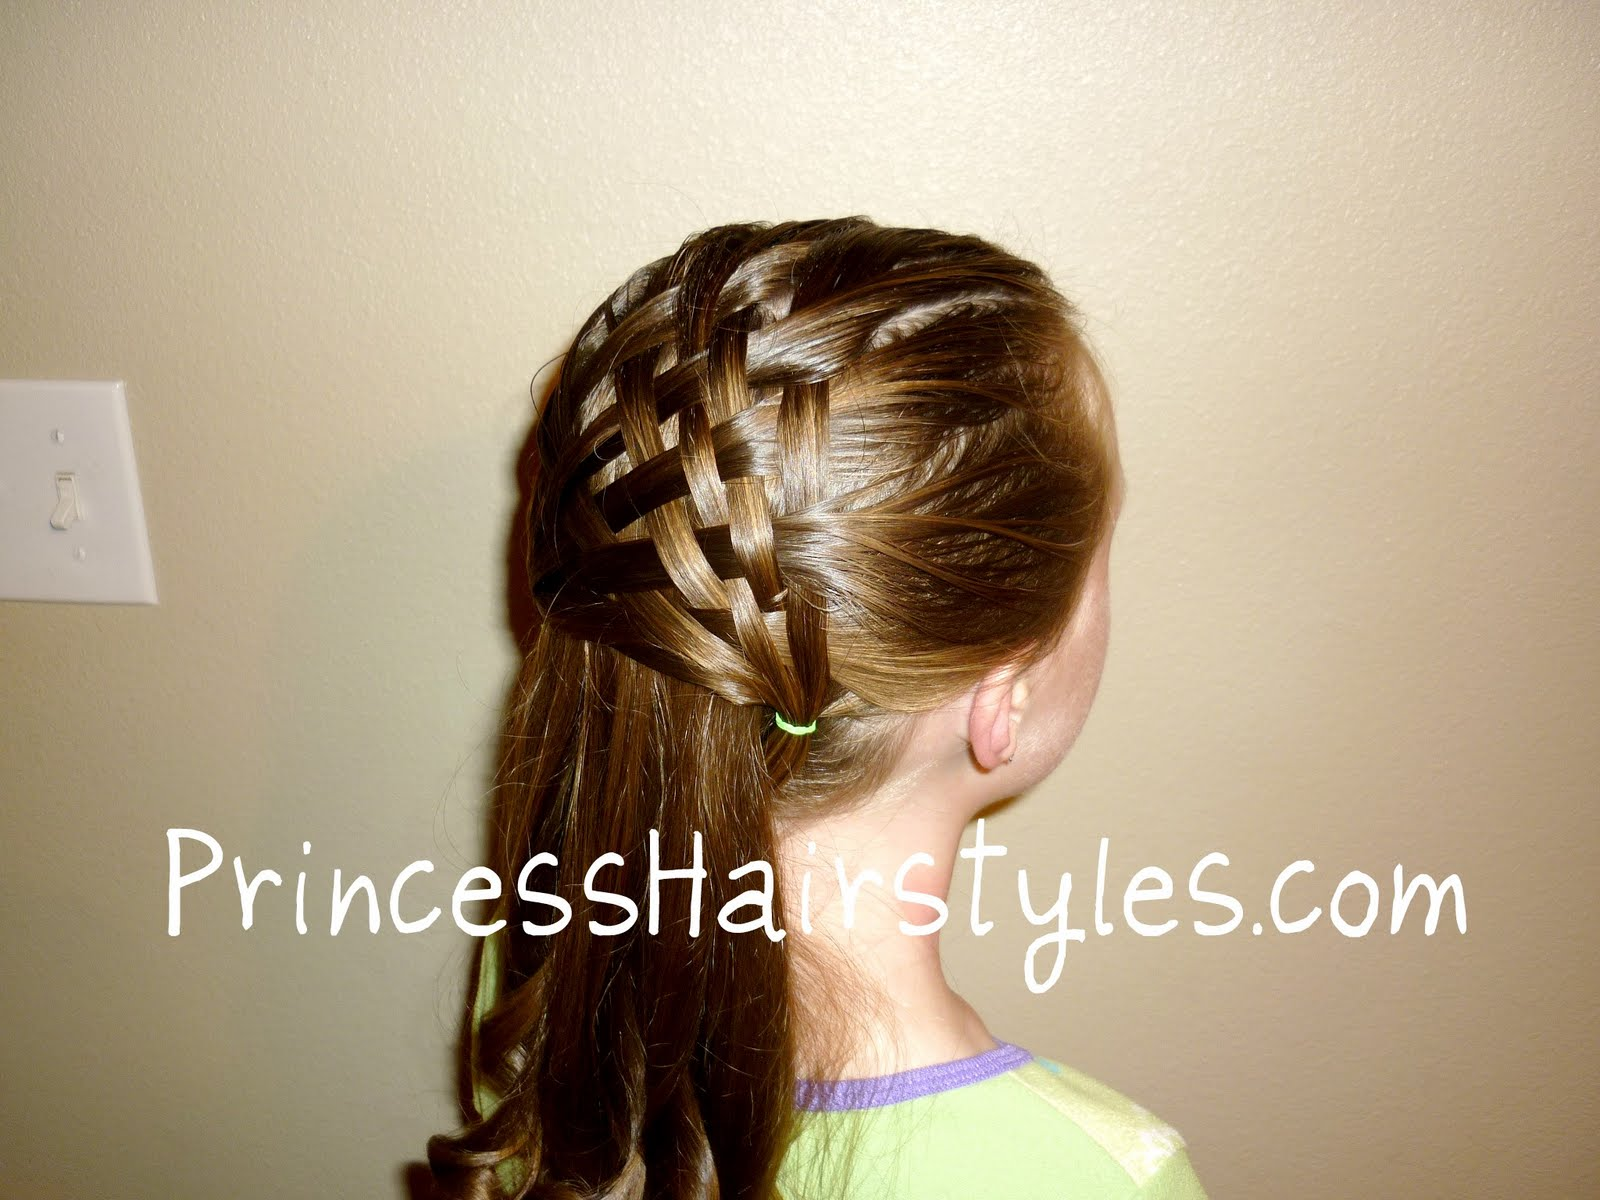 How To Make A Basket Weave Hairstyle : Basket weave hair style